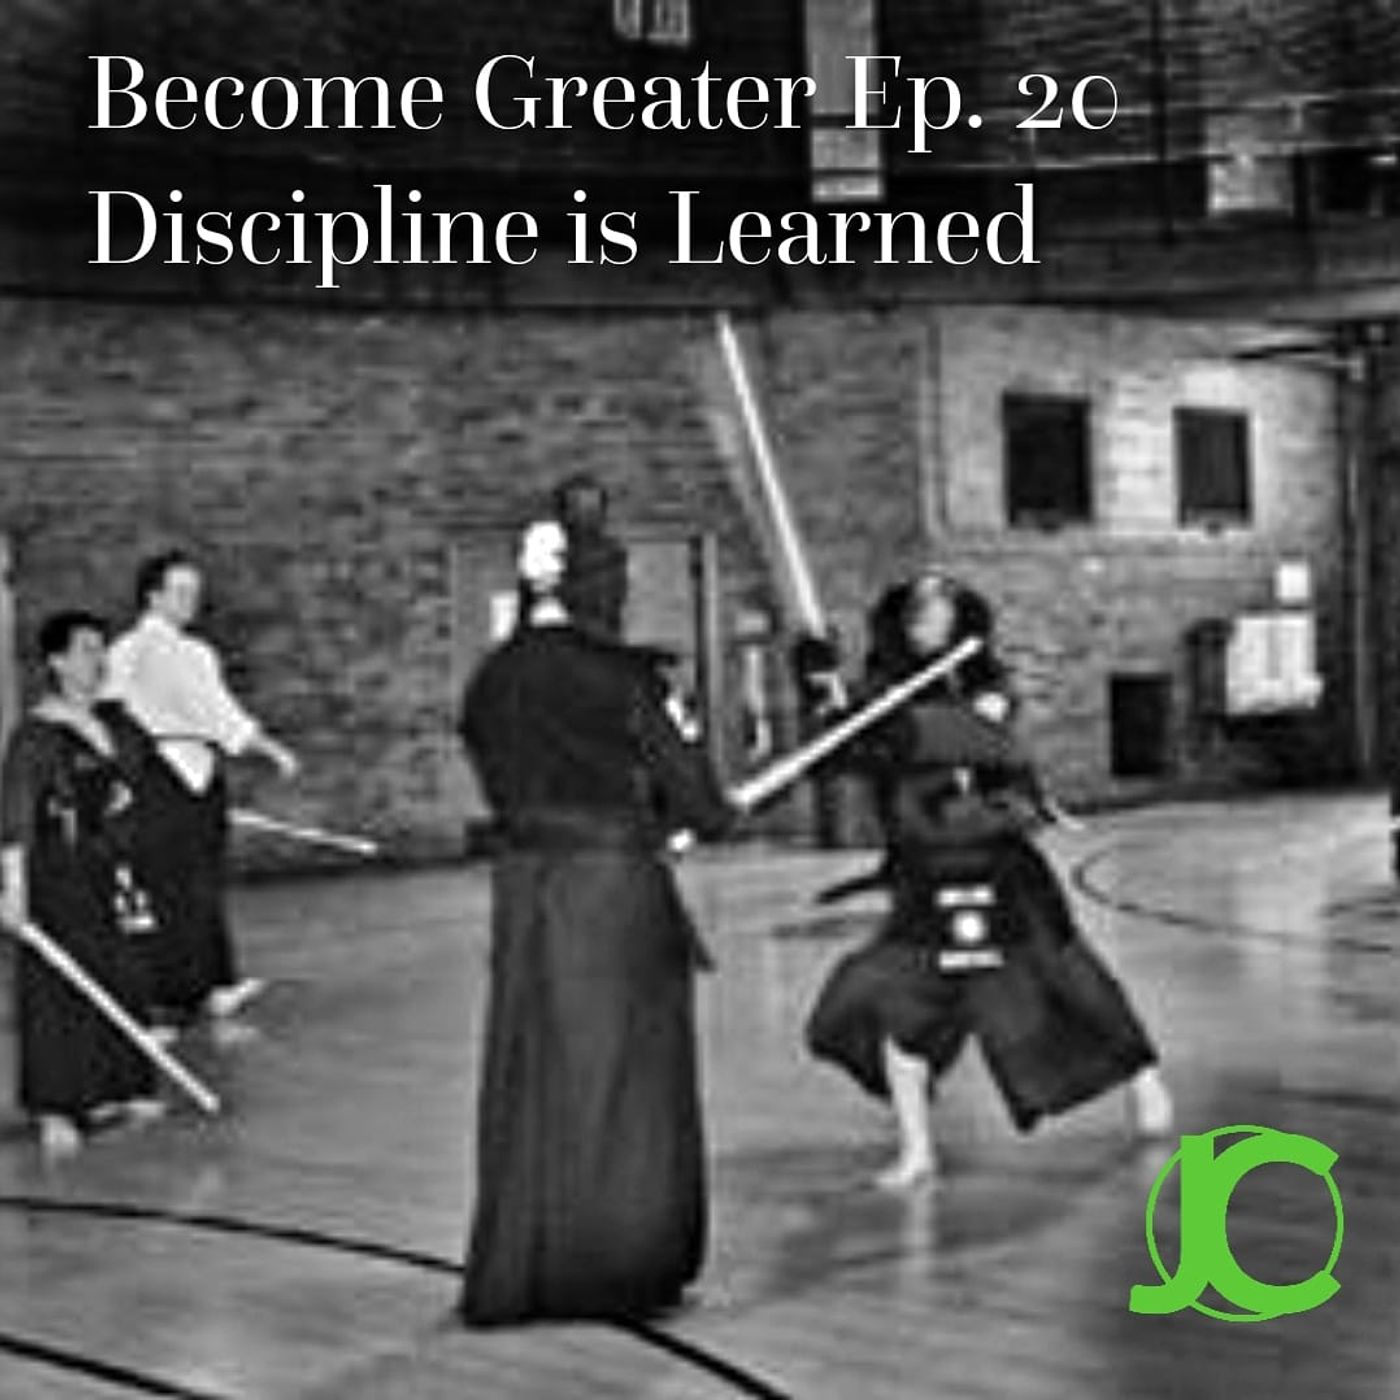 Become Greater Ep. 20 - Discipline is Learned